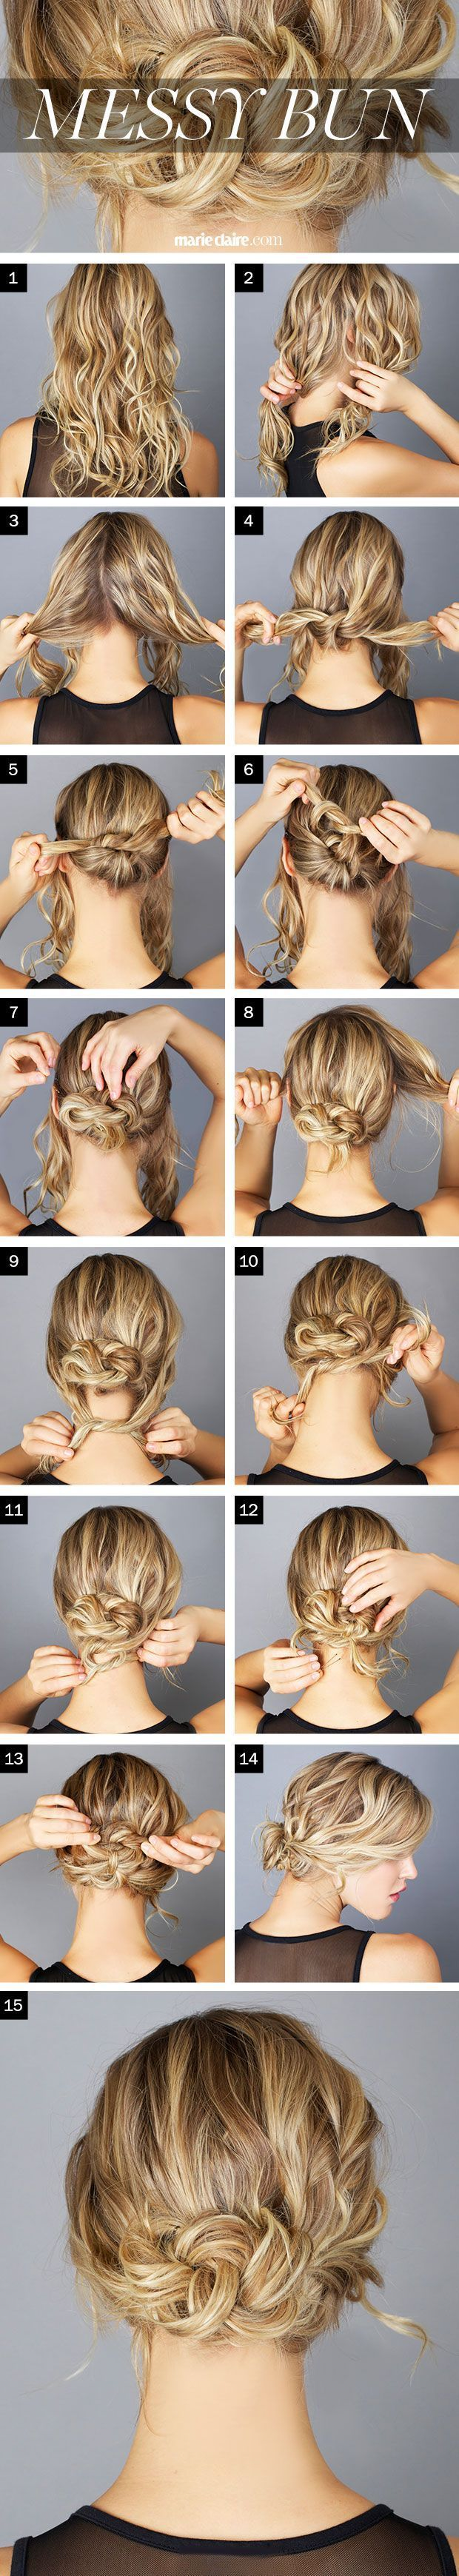 best images about hairstyles on pinterest perfect ponytail